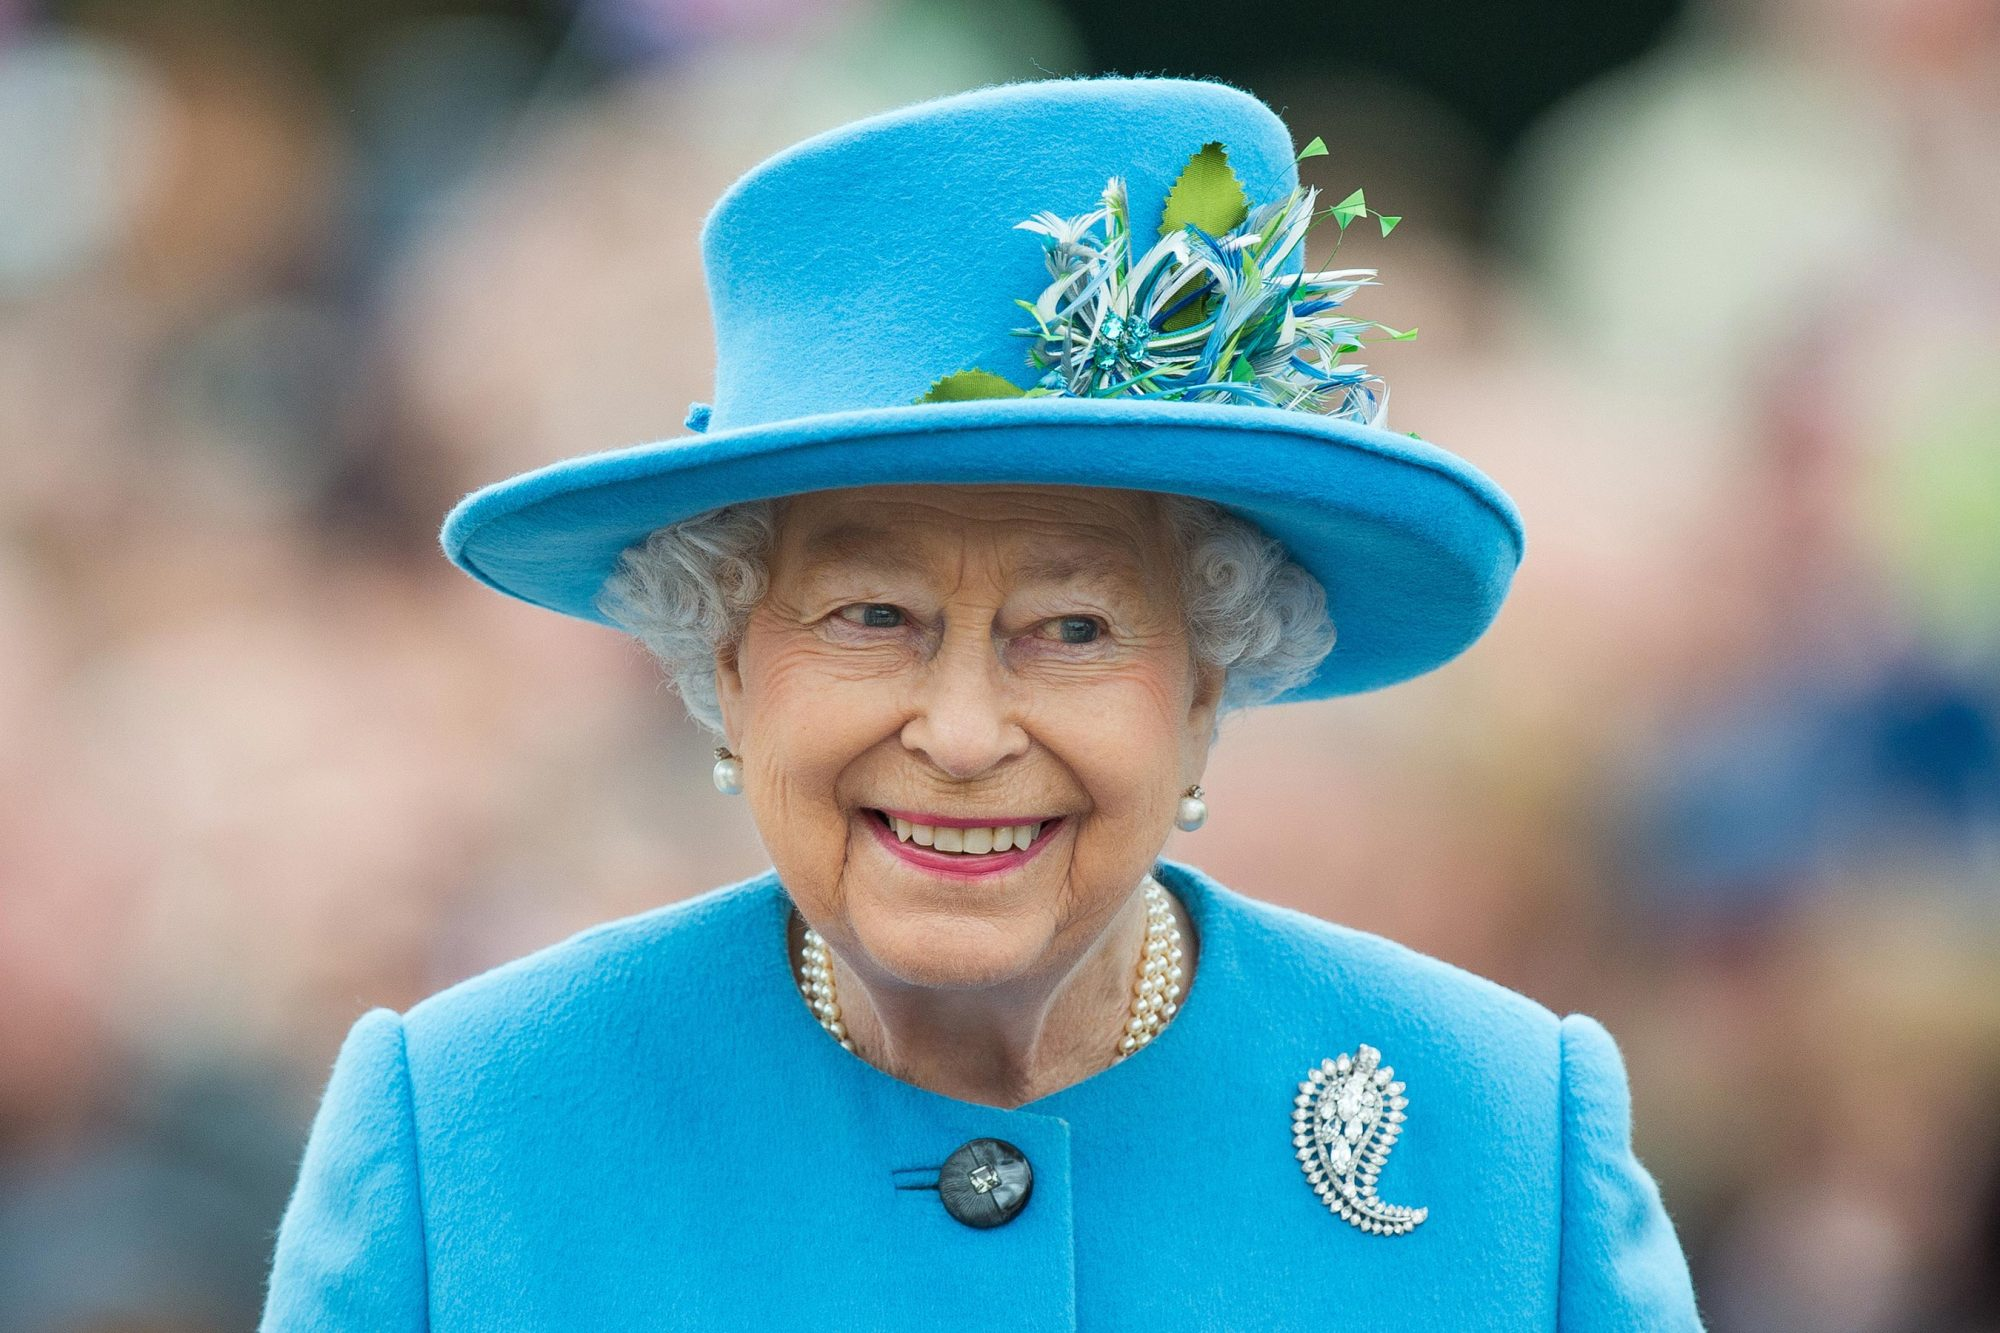 Queen Elizabeth II.photo: Samir Hussein/WireImage(c)Getty Images/HBO